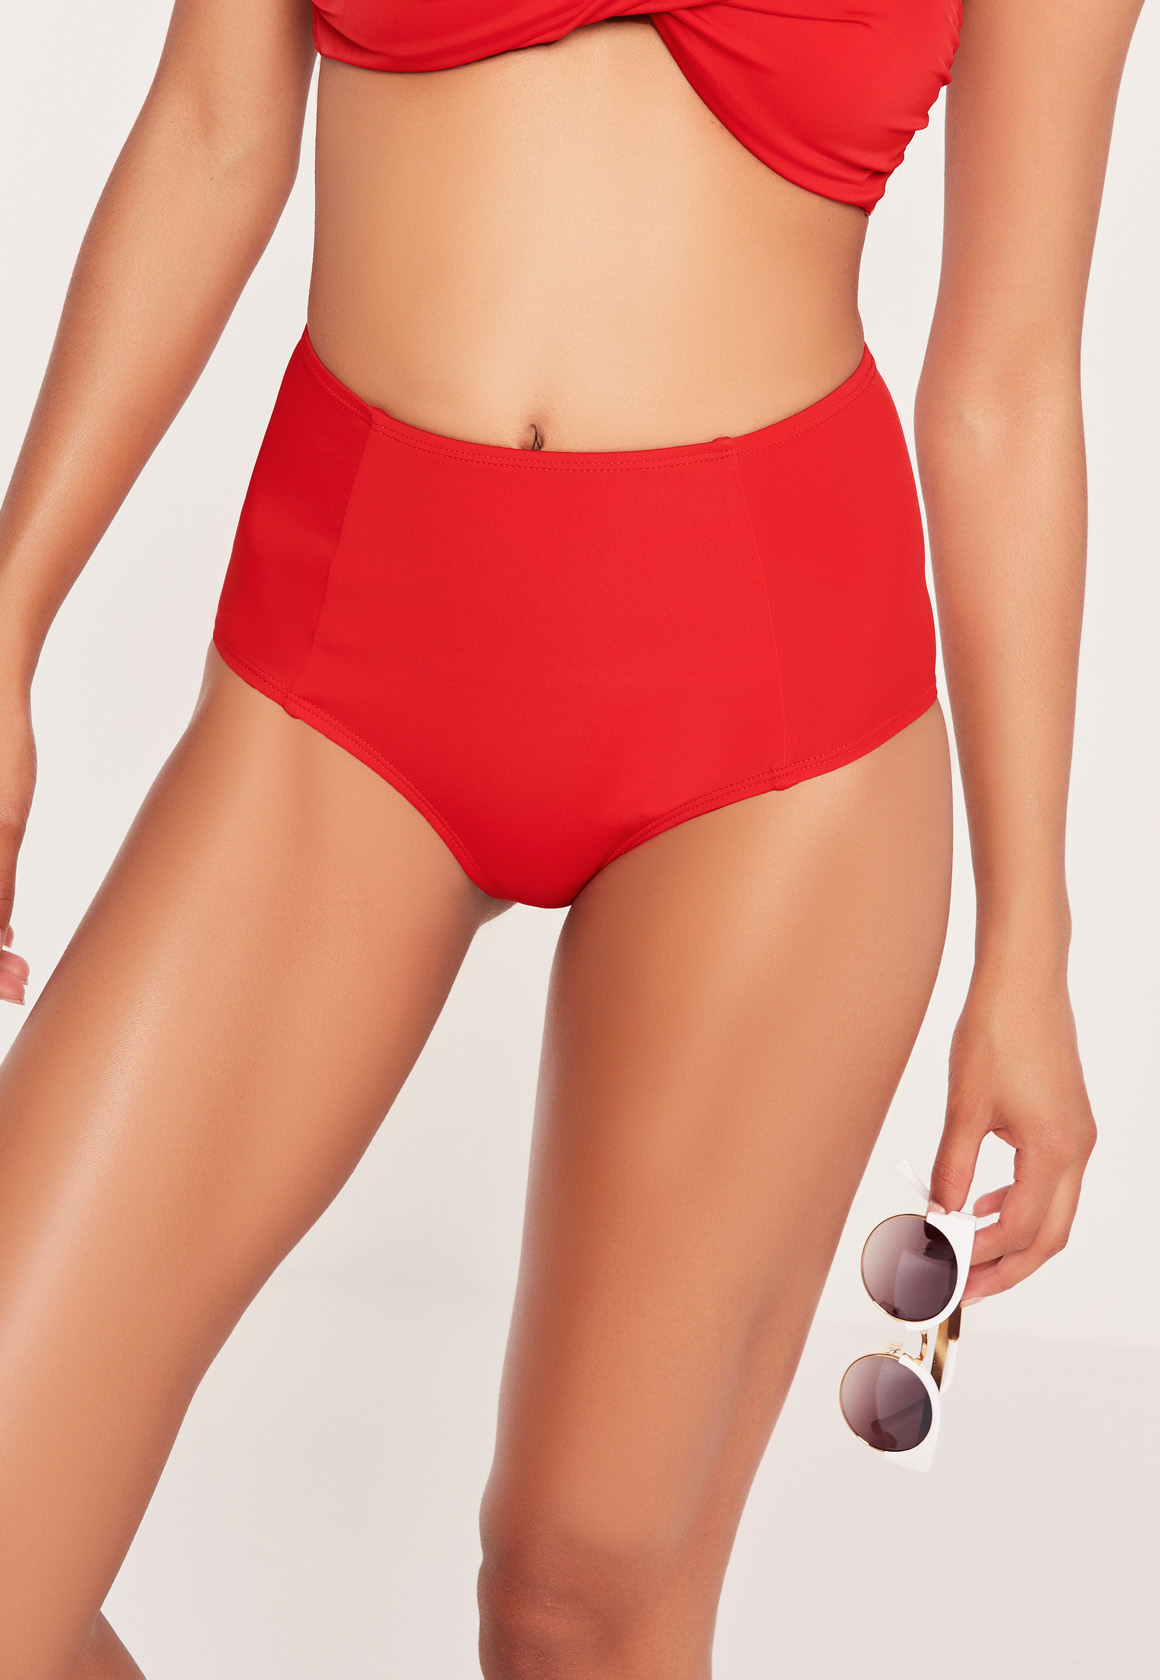 Classic look of vintage, these simple swimsuit bottoms are truly versatile and undeniably flattering. Made from our comfortable and high quality fabric in a full coverage style with tiny shirred detailing. - Solid print is great for mixing and matching, pair well with bikini top or tankini top to.